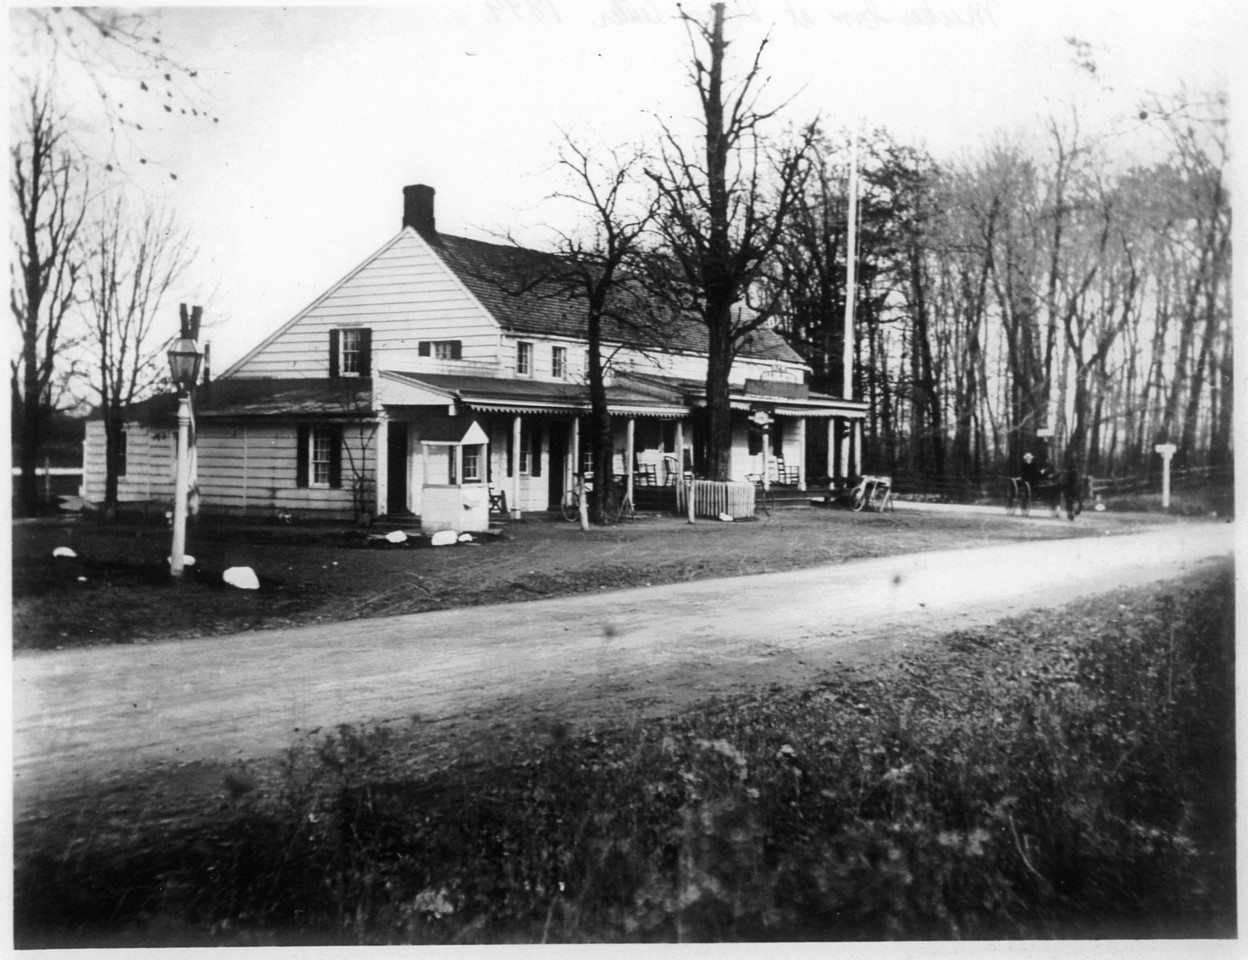 The Meeker Inn around 1890. Established by John Meeker about 1756. It was noted for its fine ales and visits by George Washington during the American Revolution. It was torn down in November 1929 to make room for the Union Center National Bank. The inn was referred to as O'Reilly's in the early 1900's. O'Reilly's was used to symbolize the temptation of Arthur Lang, an alcoholic rehabilitating at the Self Master Colony down the street as noted in a pamphlet published by the colony.